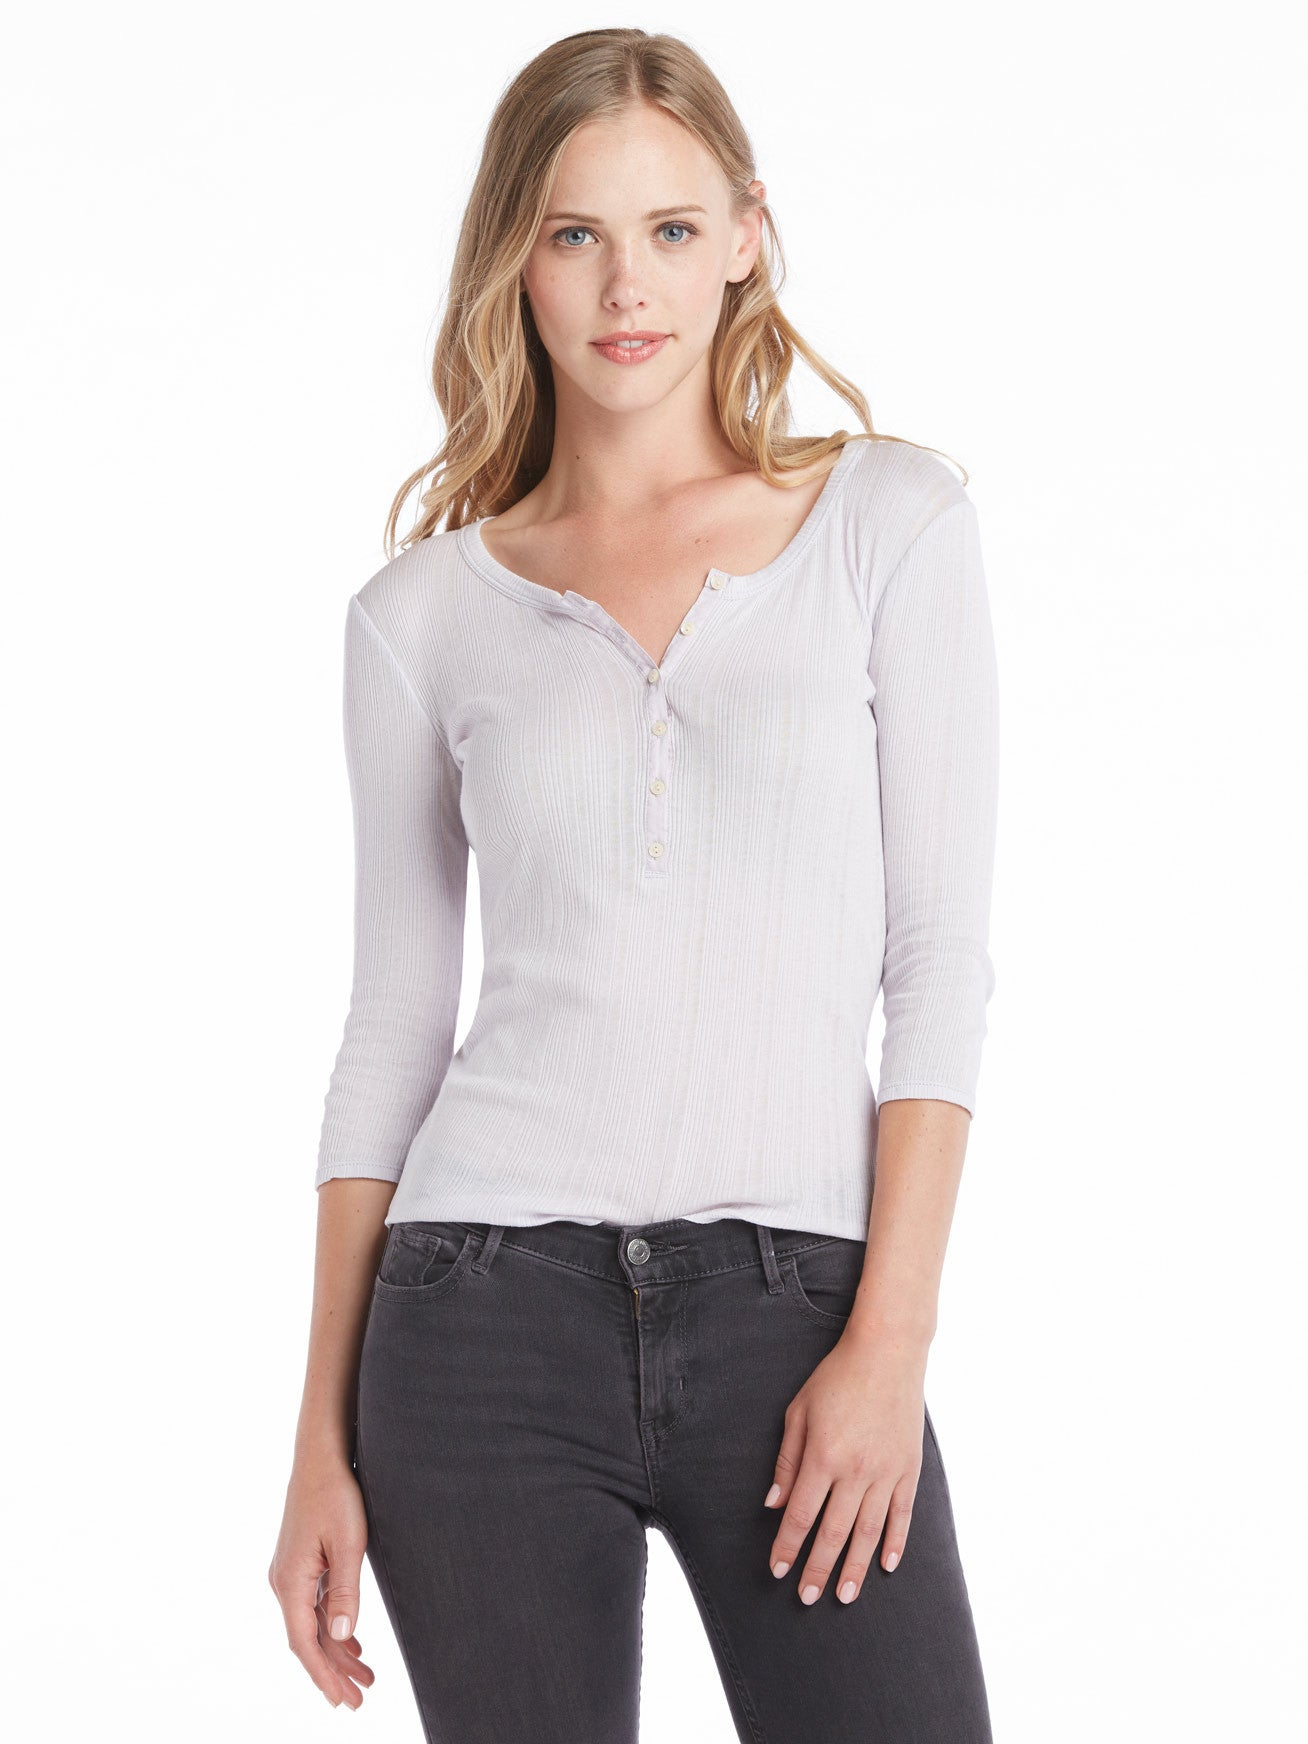 TILDEN | Rebecca Taylor Long Sleeve Mini Rib Henley